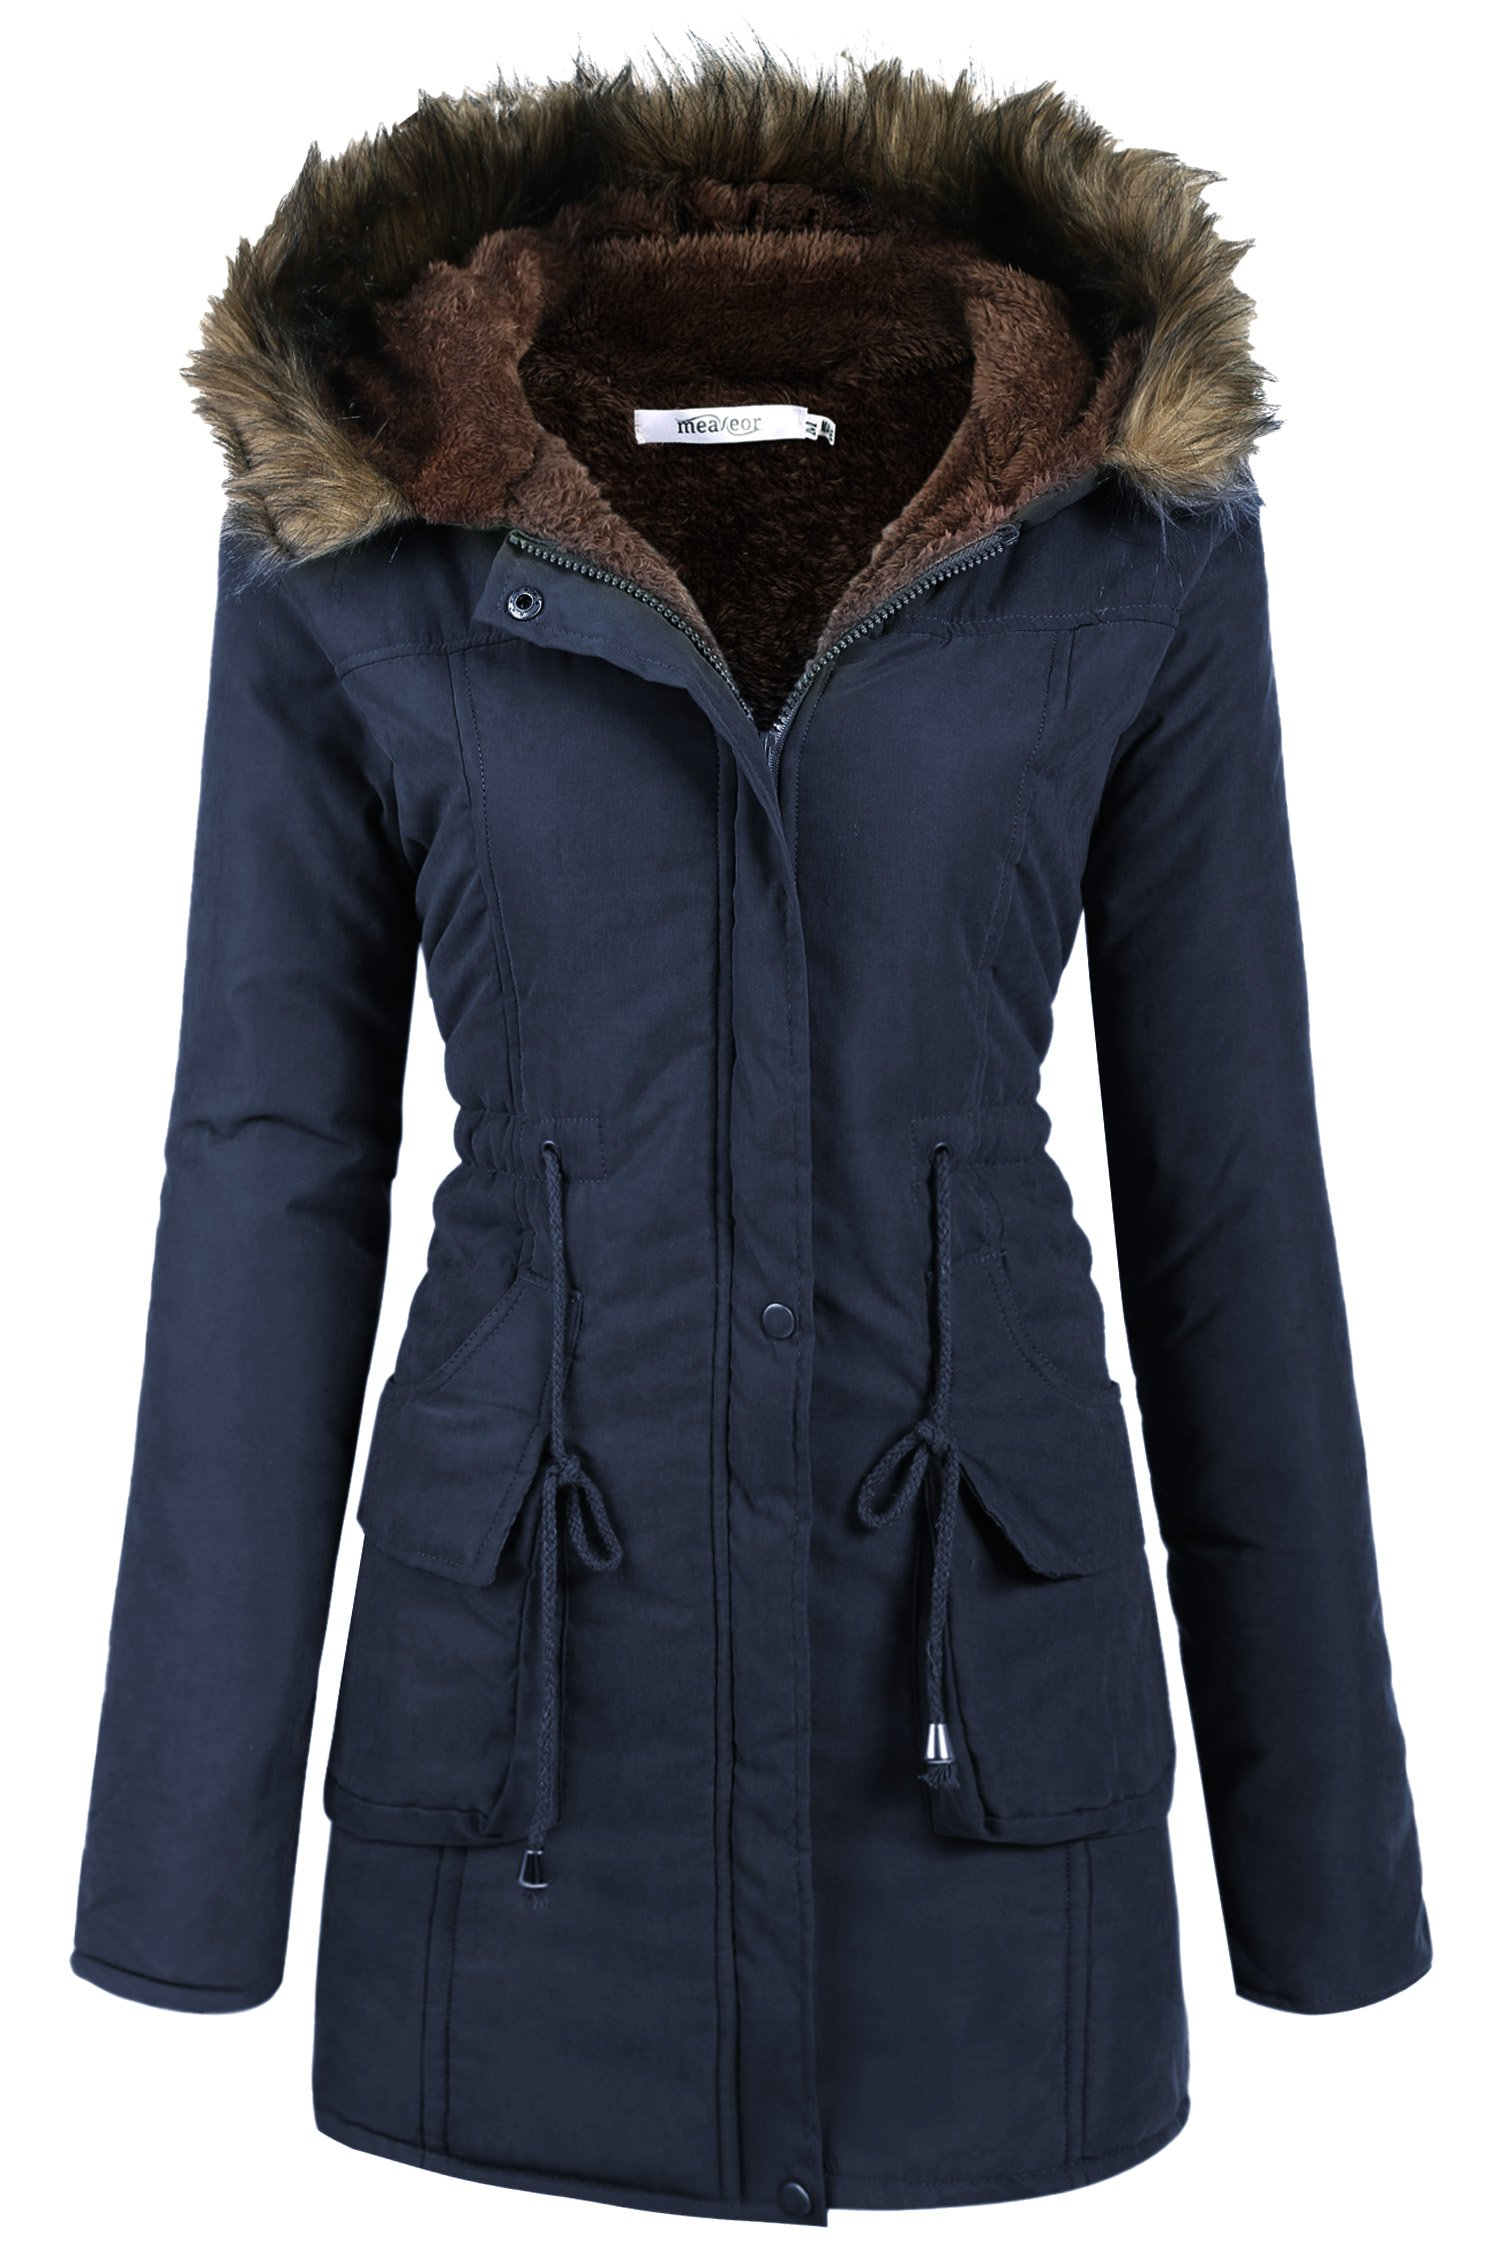 Womens Military Hooded Warm Winter Faux Fur Lined Parkas Anroaks Long Coats, Medium, Style 2: Navy Blue 2